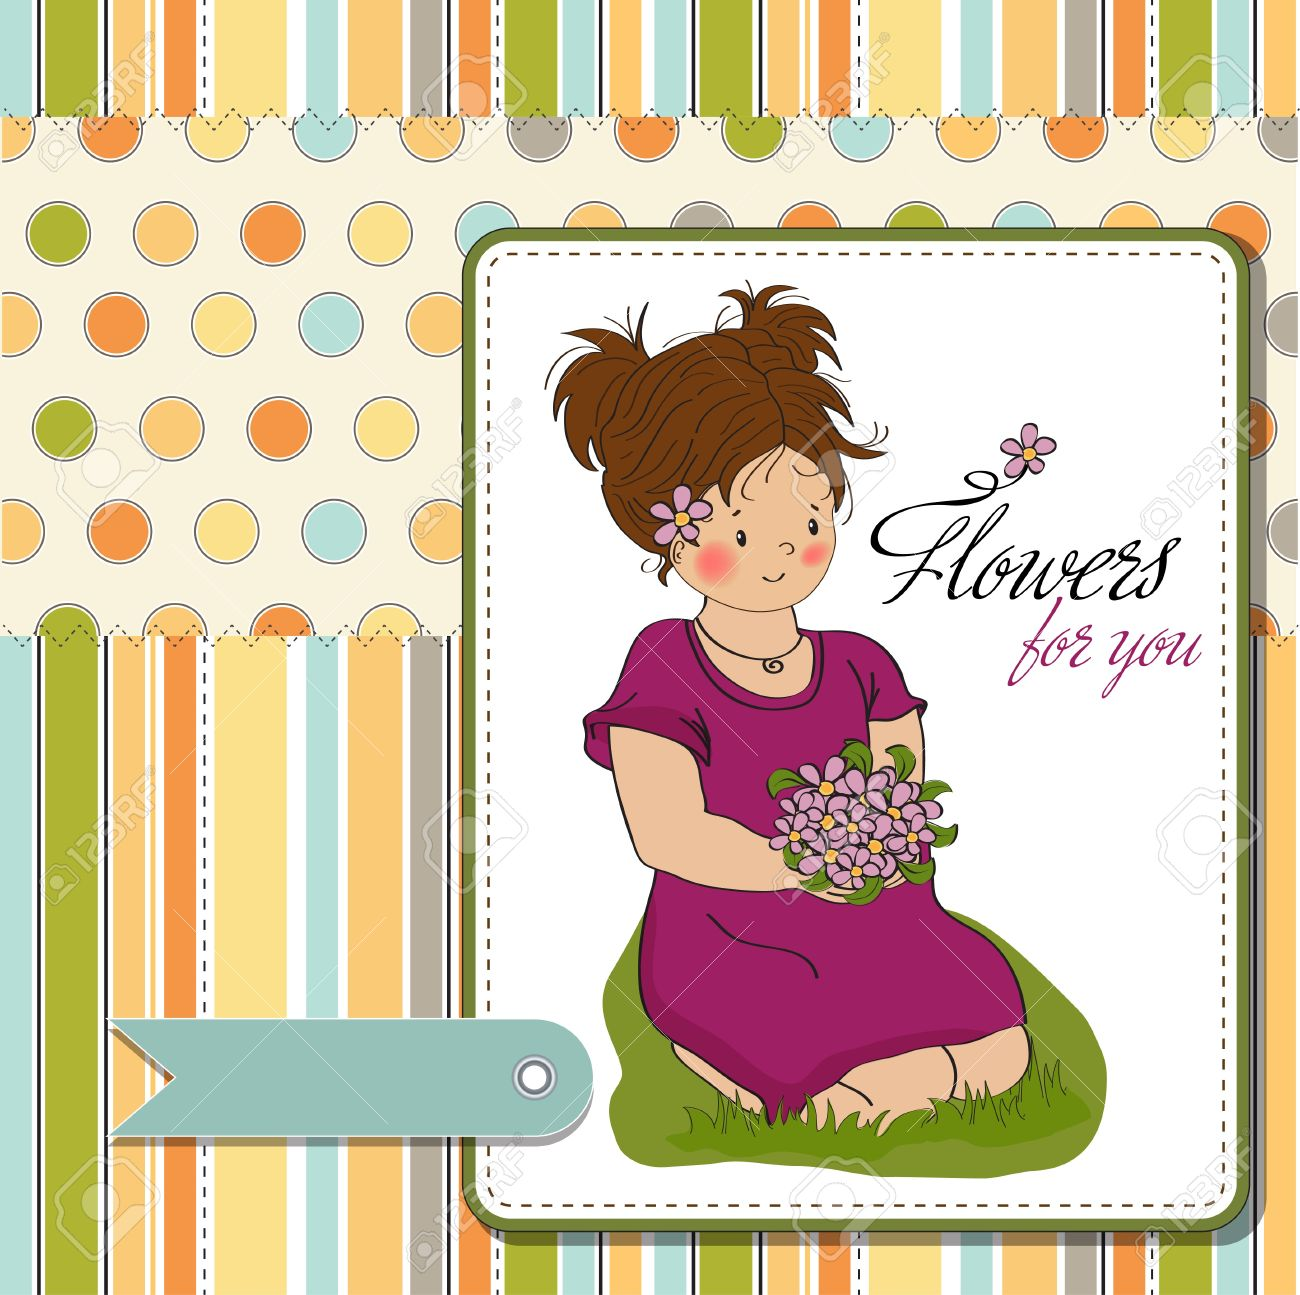 Young Girl With A Bouquet Of Flowers Birthday Greeting Card Royalty